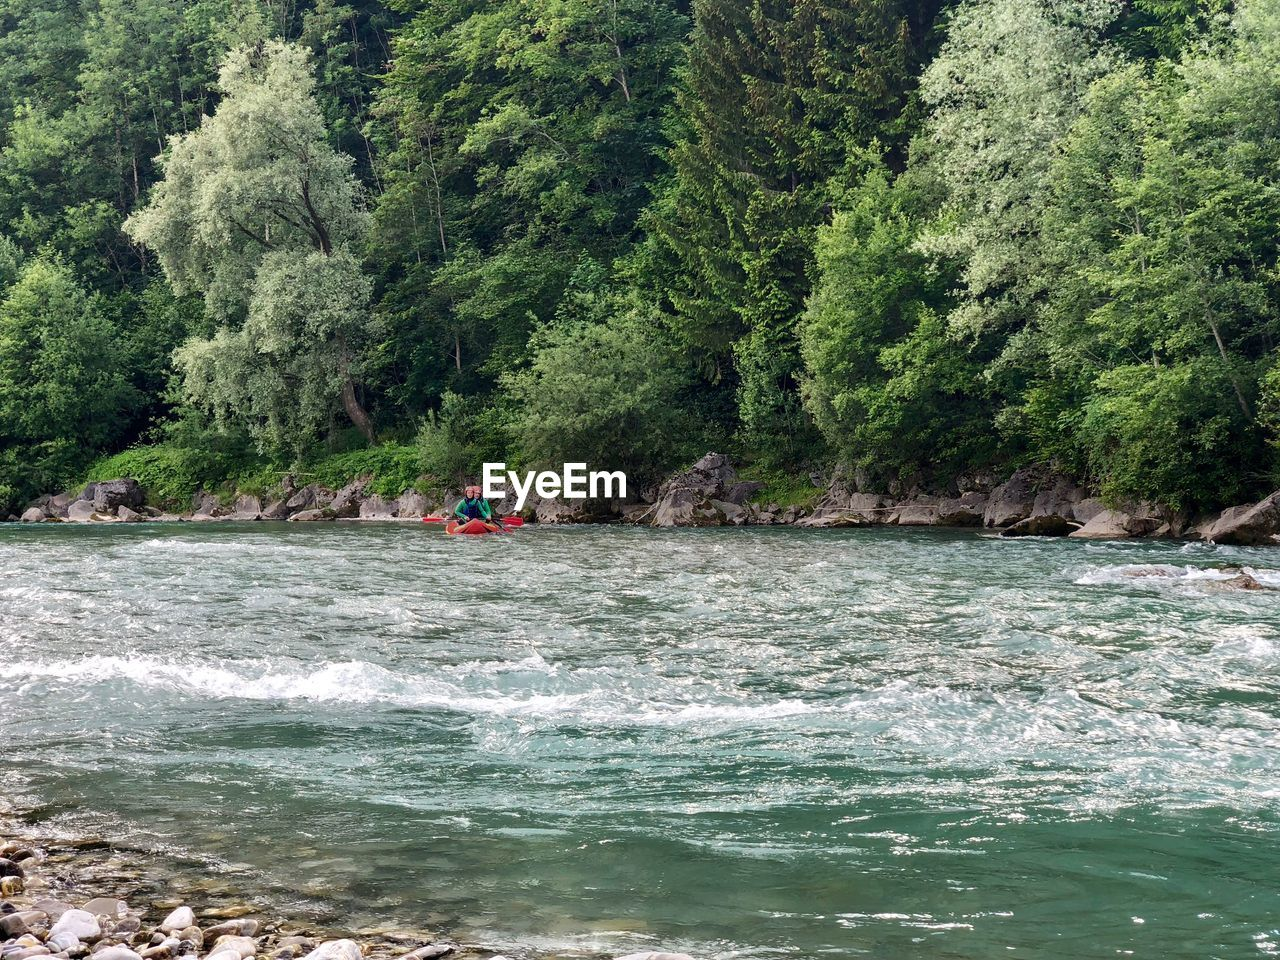 water, tree, plant, waterfront, sport, adventure, beauty in nature, nature, sea, aquatic sport, day, real people, land, scenics - nature, lifestyles, forest, leisure activity, people, outdoors, flowing water